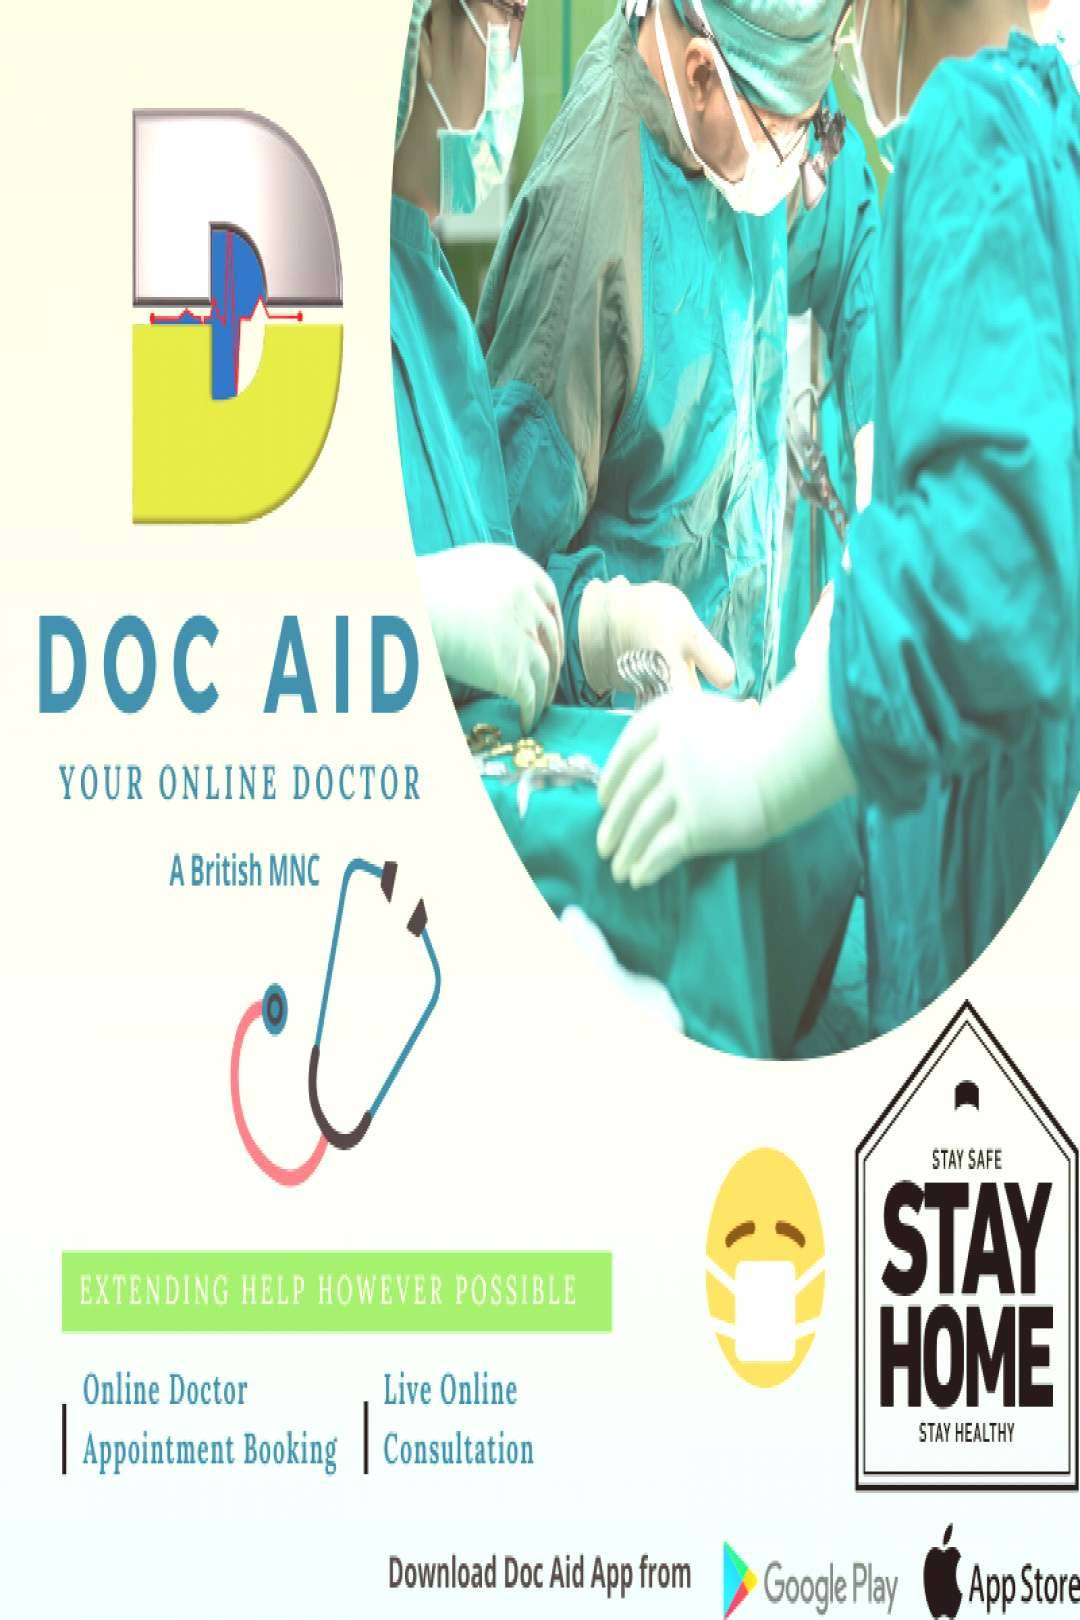 Stay safe, stay home and stay healthy! Book your appointment online with doctors... Stay safe, sta